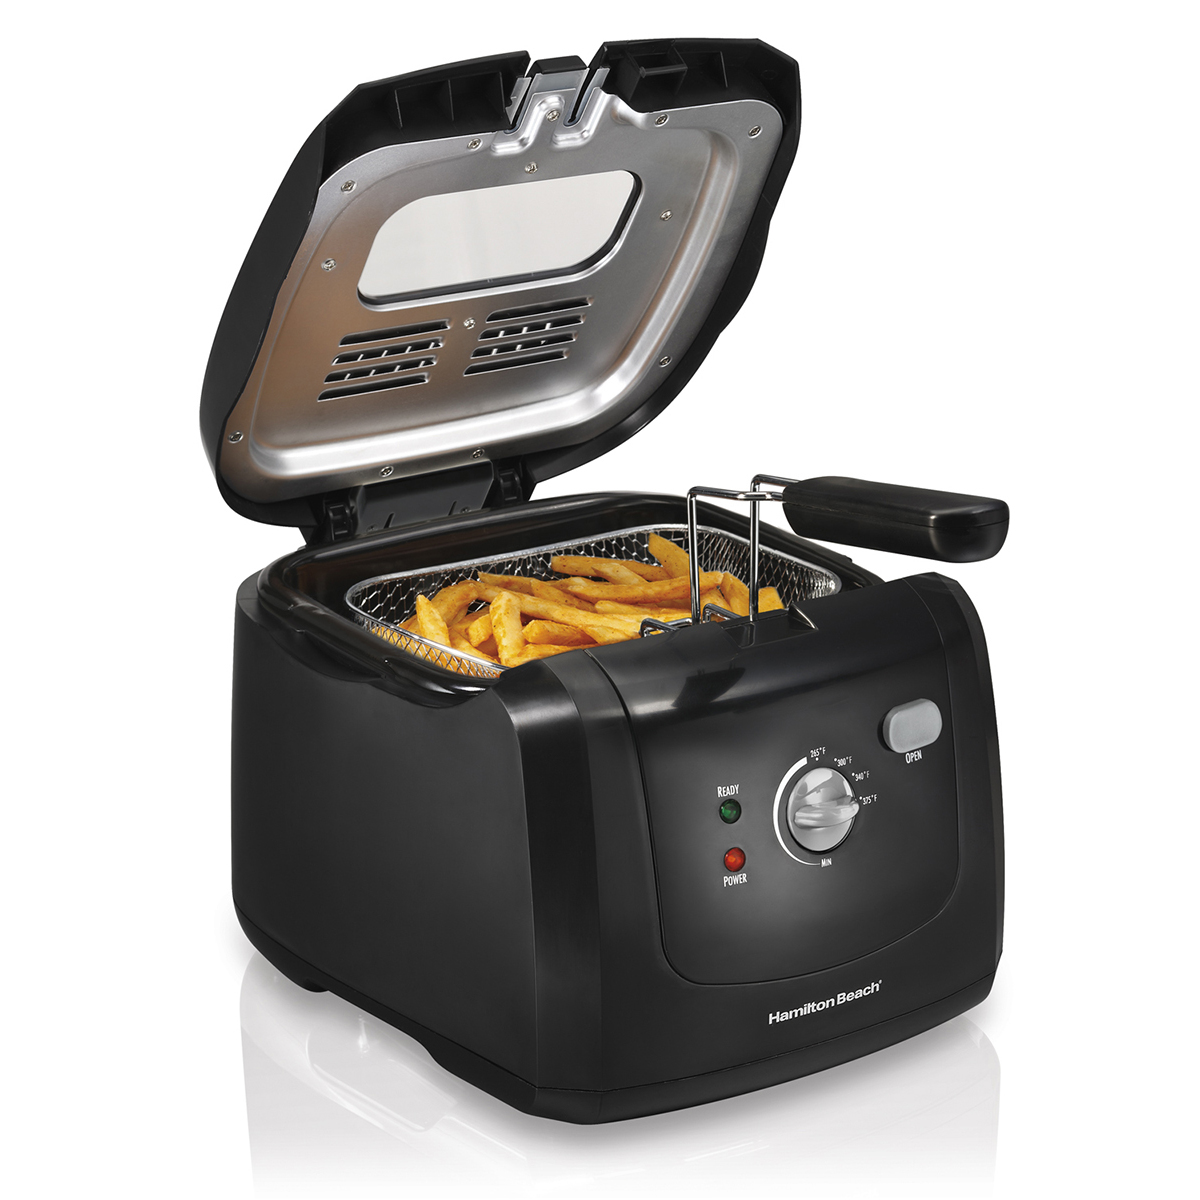 Deep Fryer, 8 Cup Oil Capacity with Immersion Heater - Black (35021)